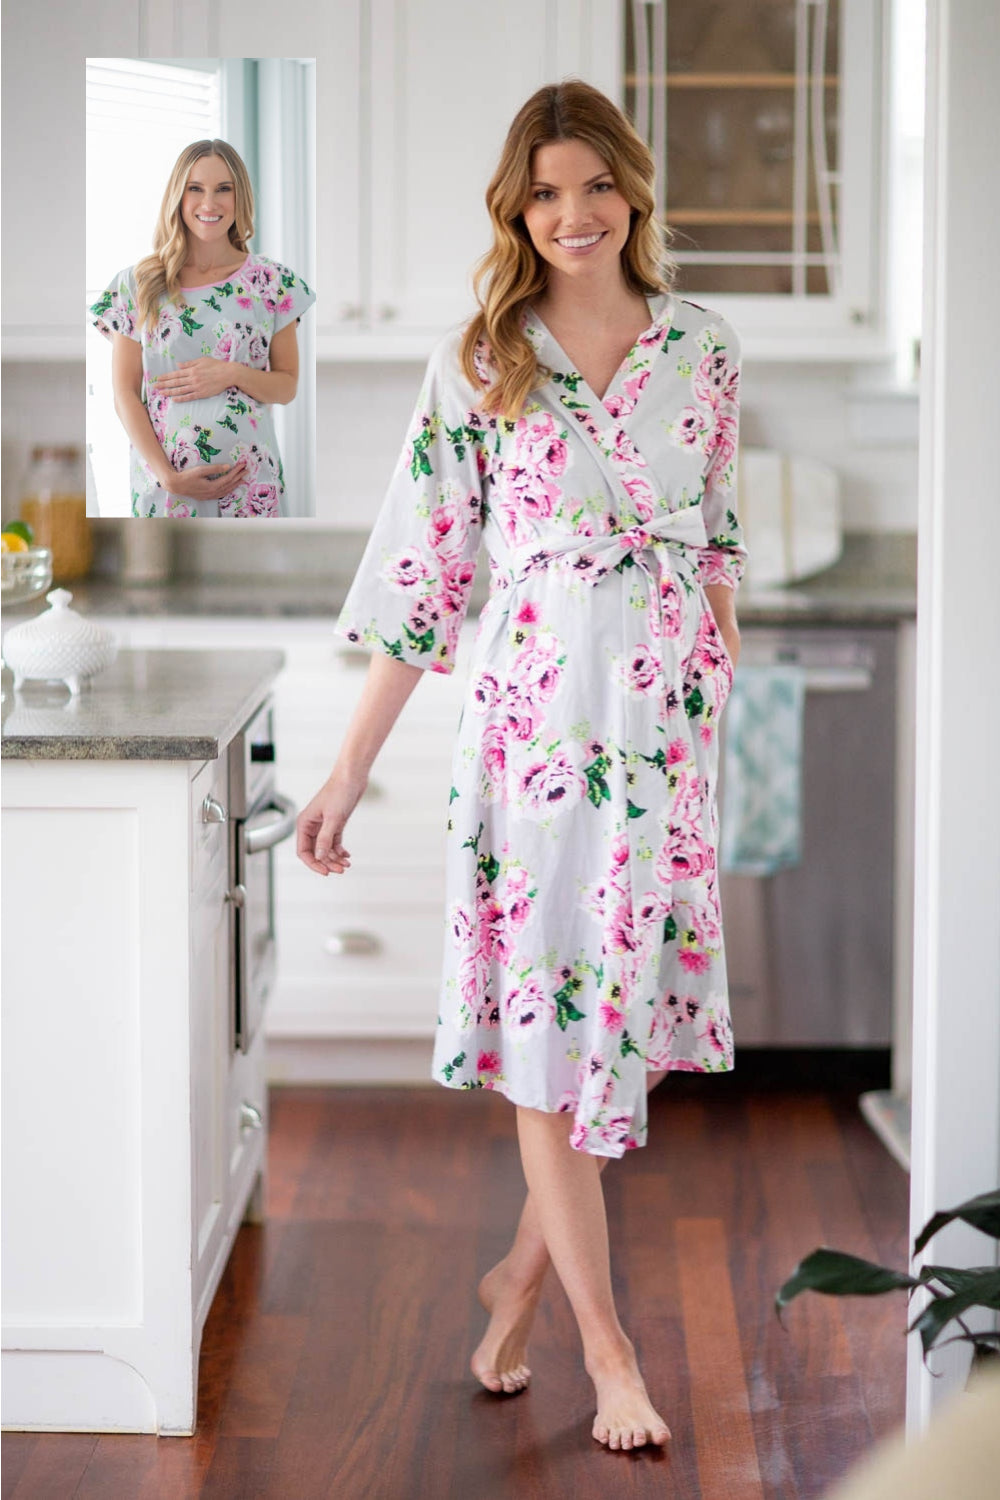 Olivia Floral Maternity Delivery Hospital Gown Gownie Delivery Robe Gownies